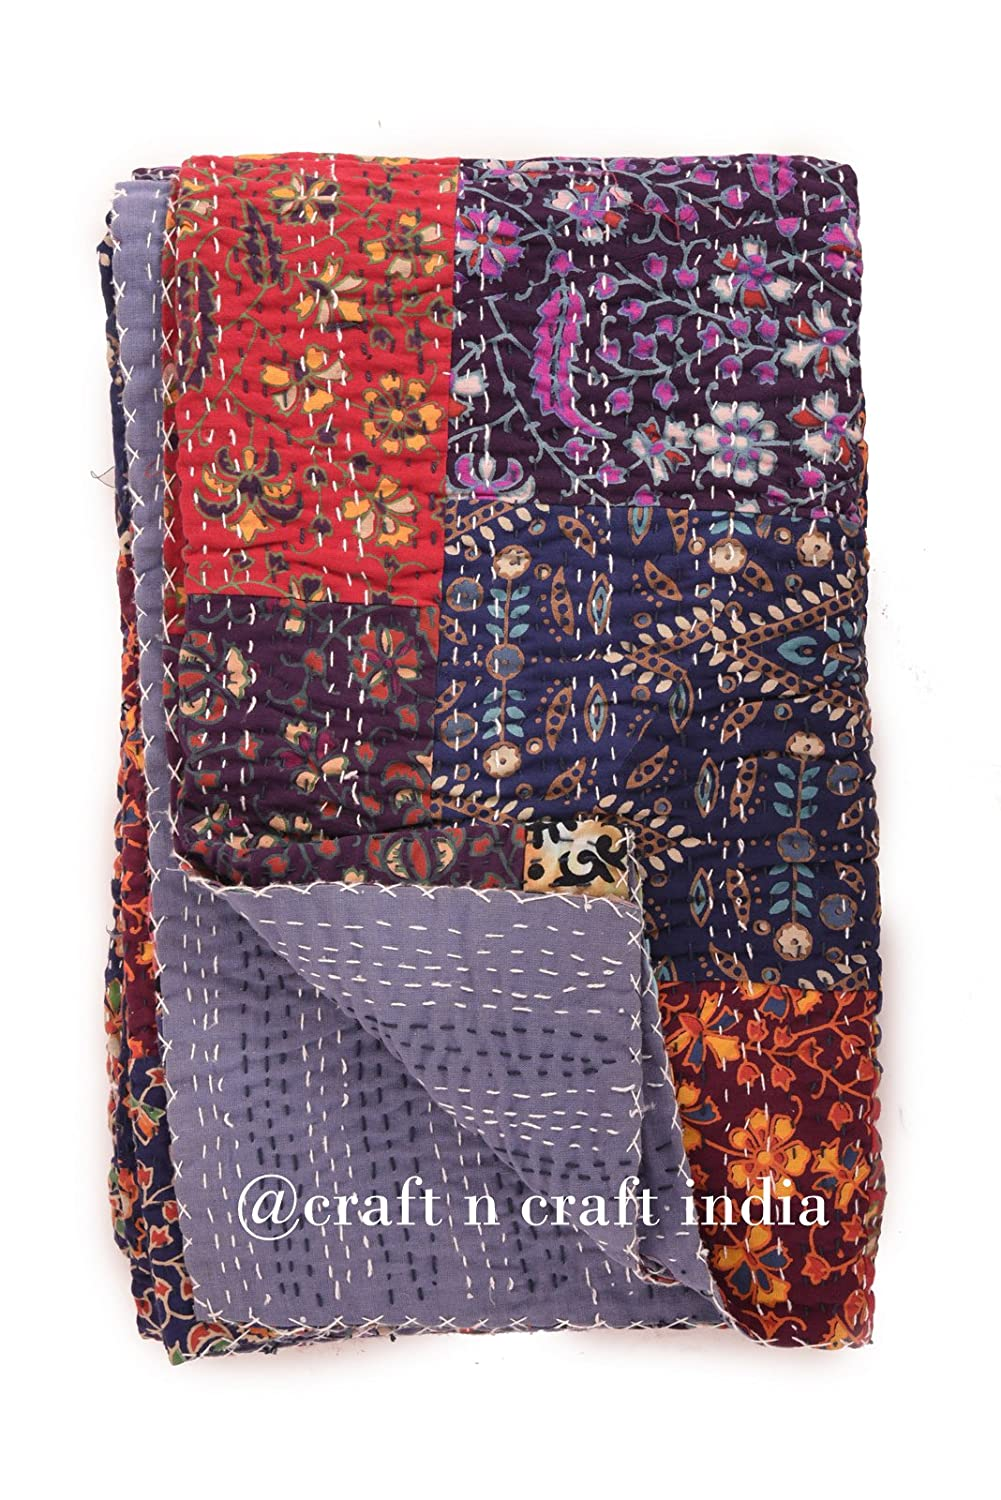 Craft N Craft India Mandala Tapestry Patchwork quilt Twin Size Kantha Quilt, Kantha Blanket, Bed Cover, Twin Kantha bedspread, Bohemian Bedding Kantha Size 60 Inch x 90 Inch (Multi-1) (Multi-1)